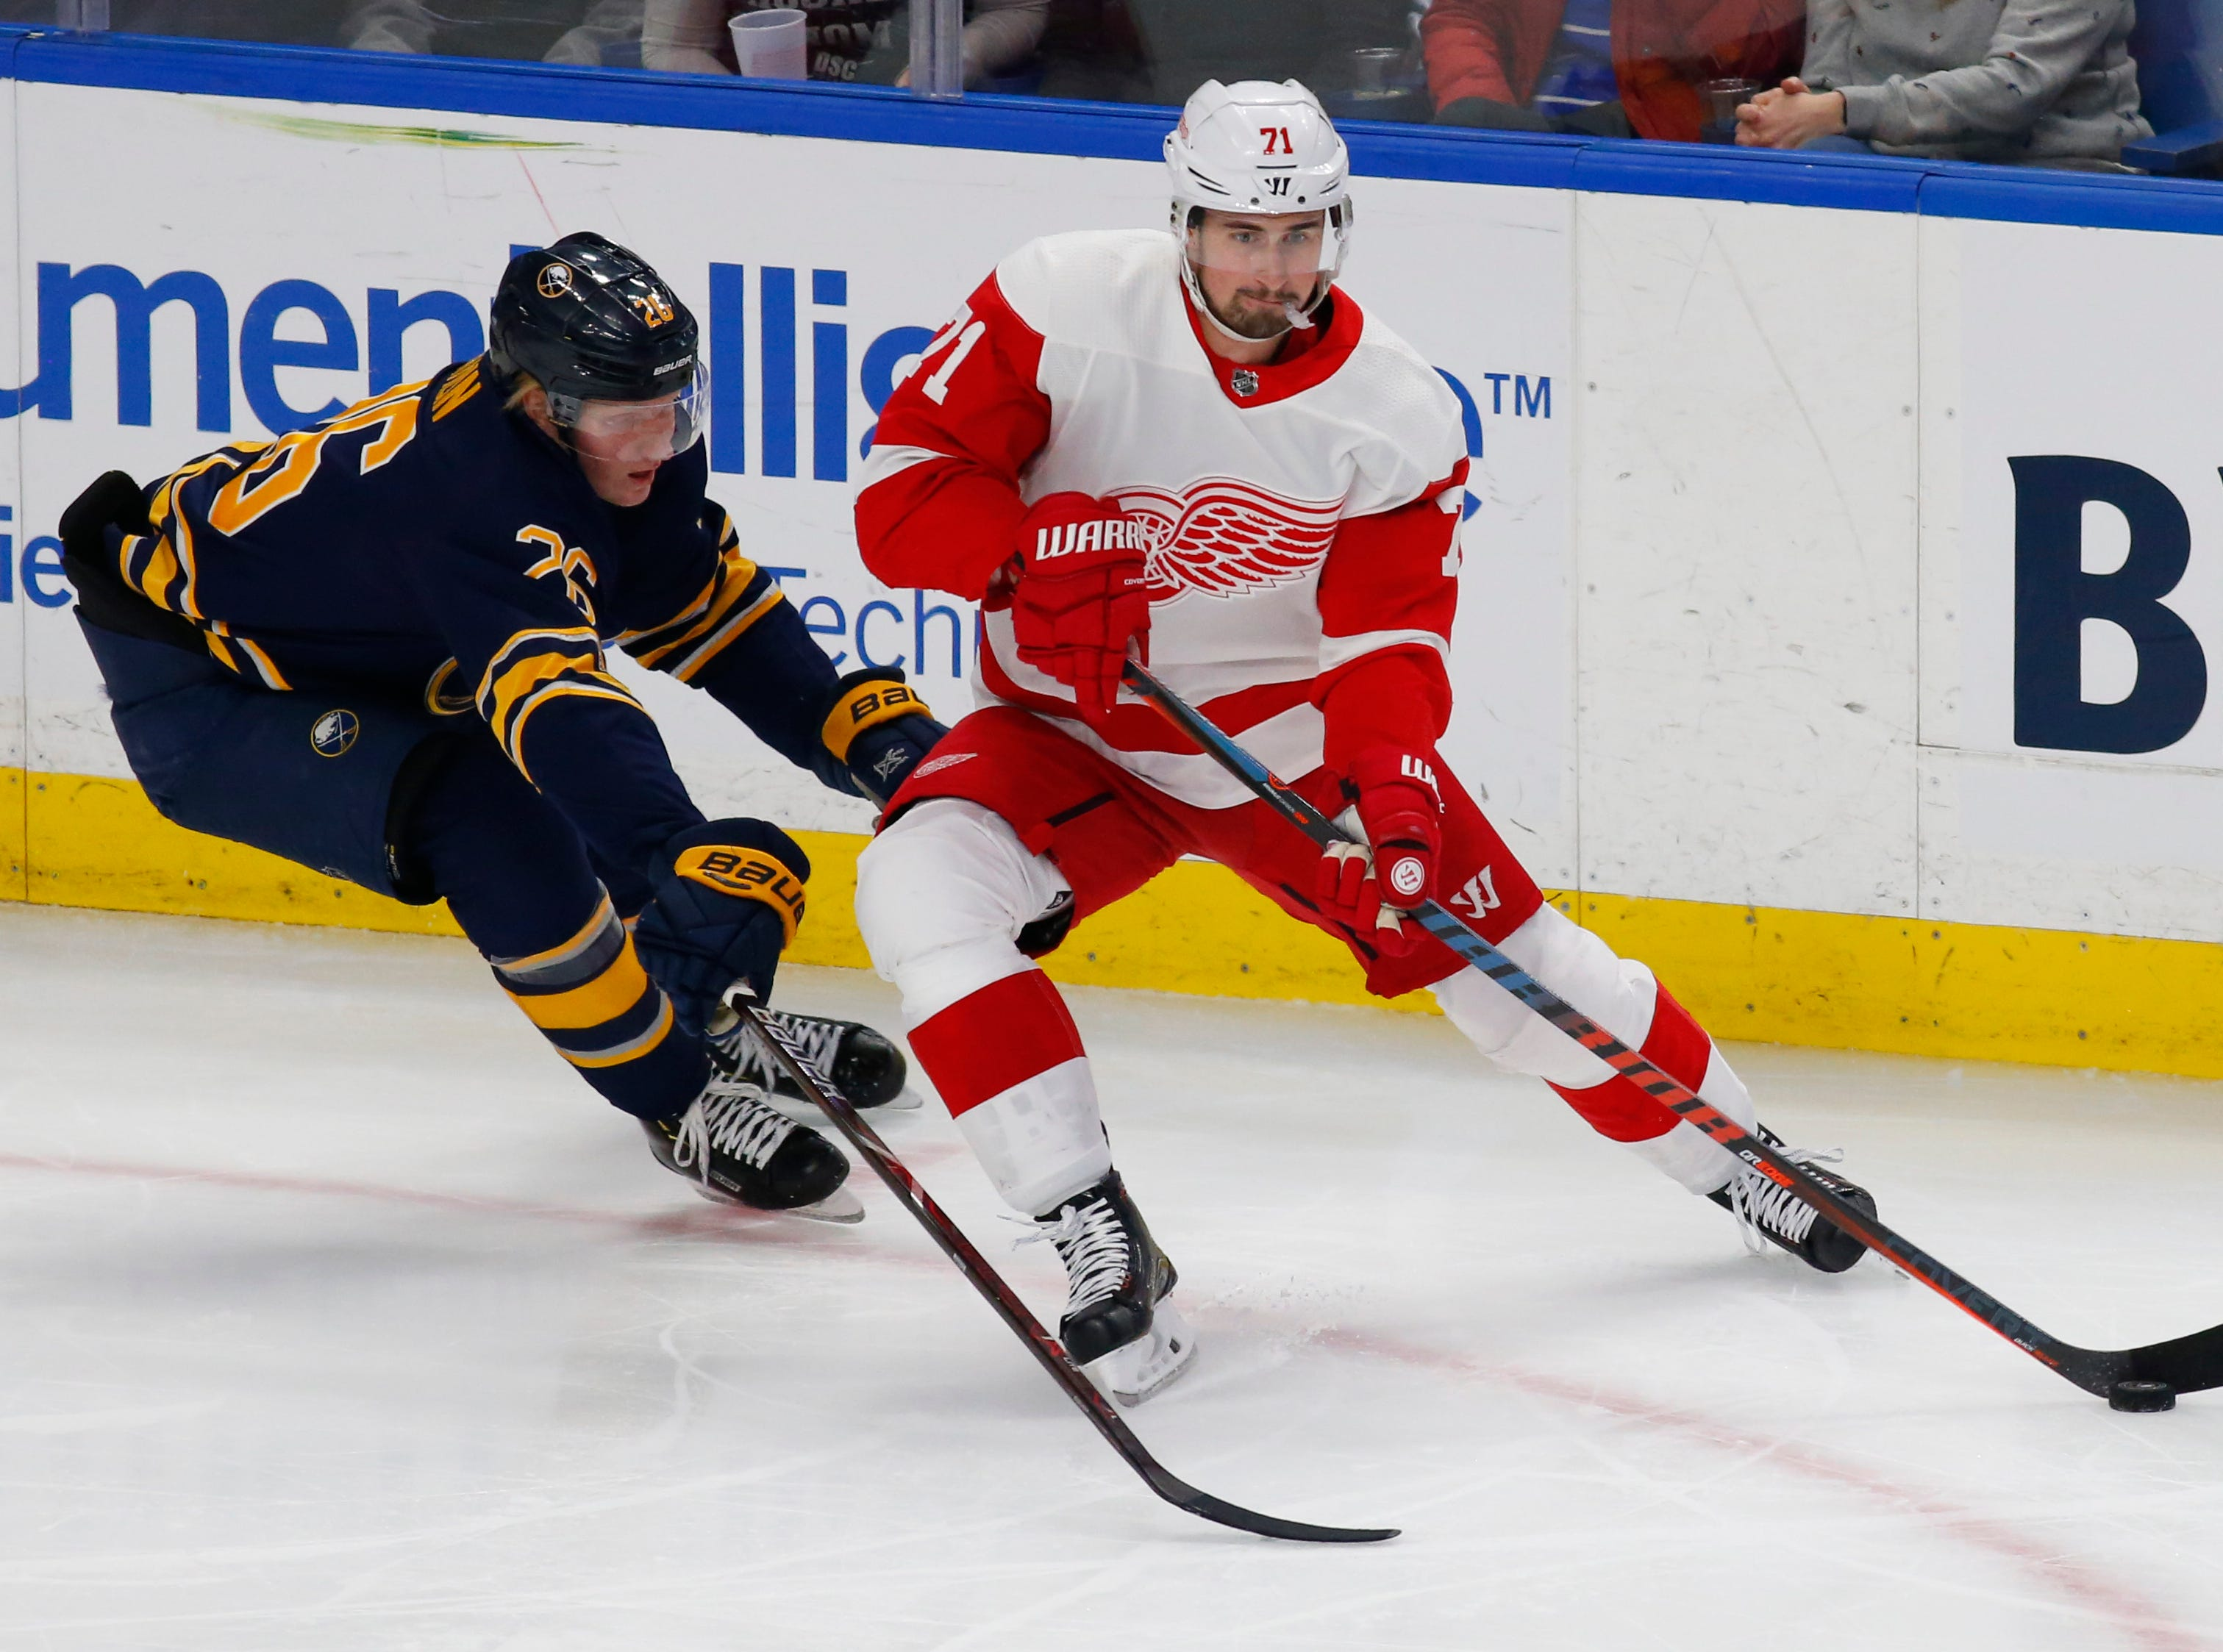 Buffalo Sabres defenseman Rasmus Dahlin (26) defends Detroit Red Wings forward Dylan Larkin (71) during the first period of an NHL hockey game, Saturday, Feb. 9, 2019, in Buffalo N.Y. (AP Photo/Jeffrey T. Barnes)